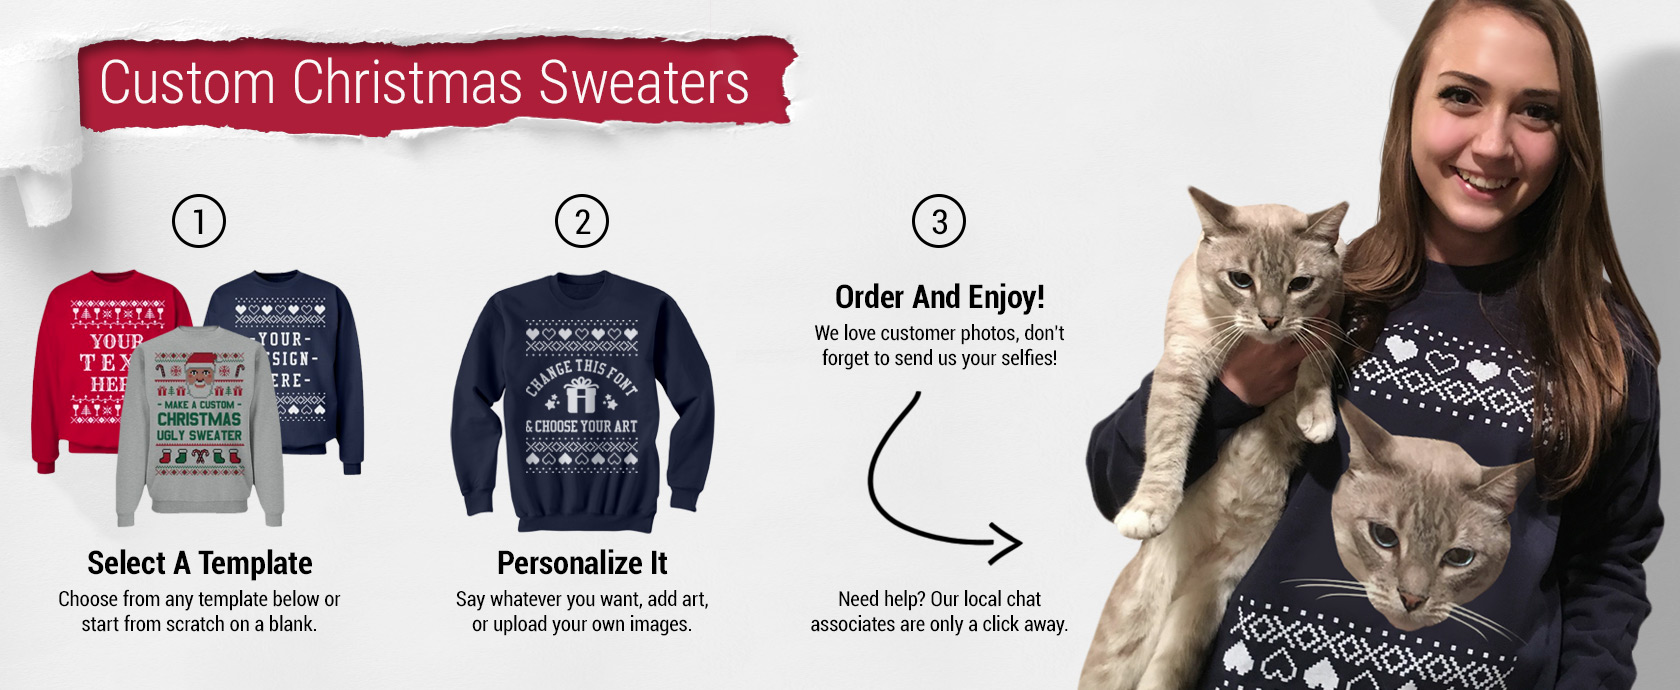 Custom Christmas Sweaters.Be Merry And Bright With Custom Christmas Sweaters